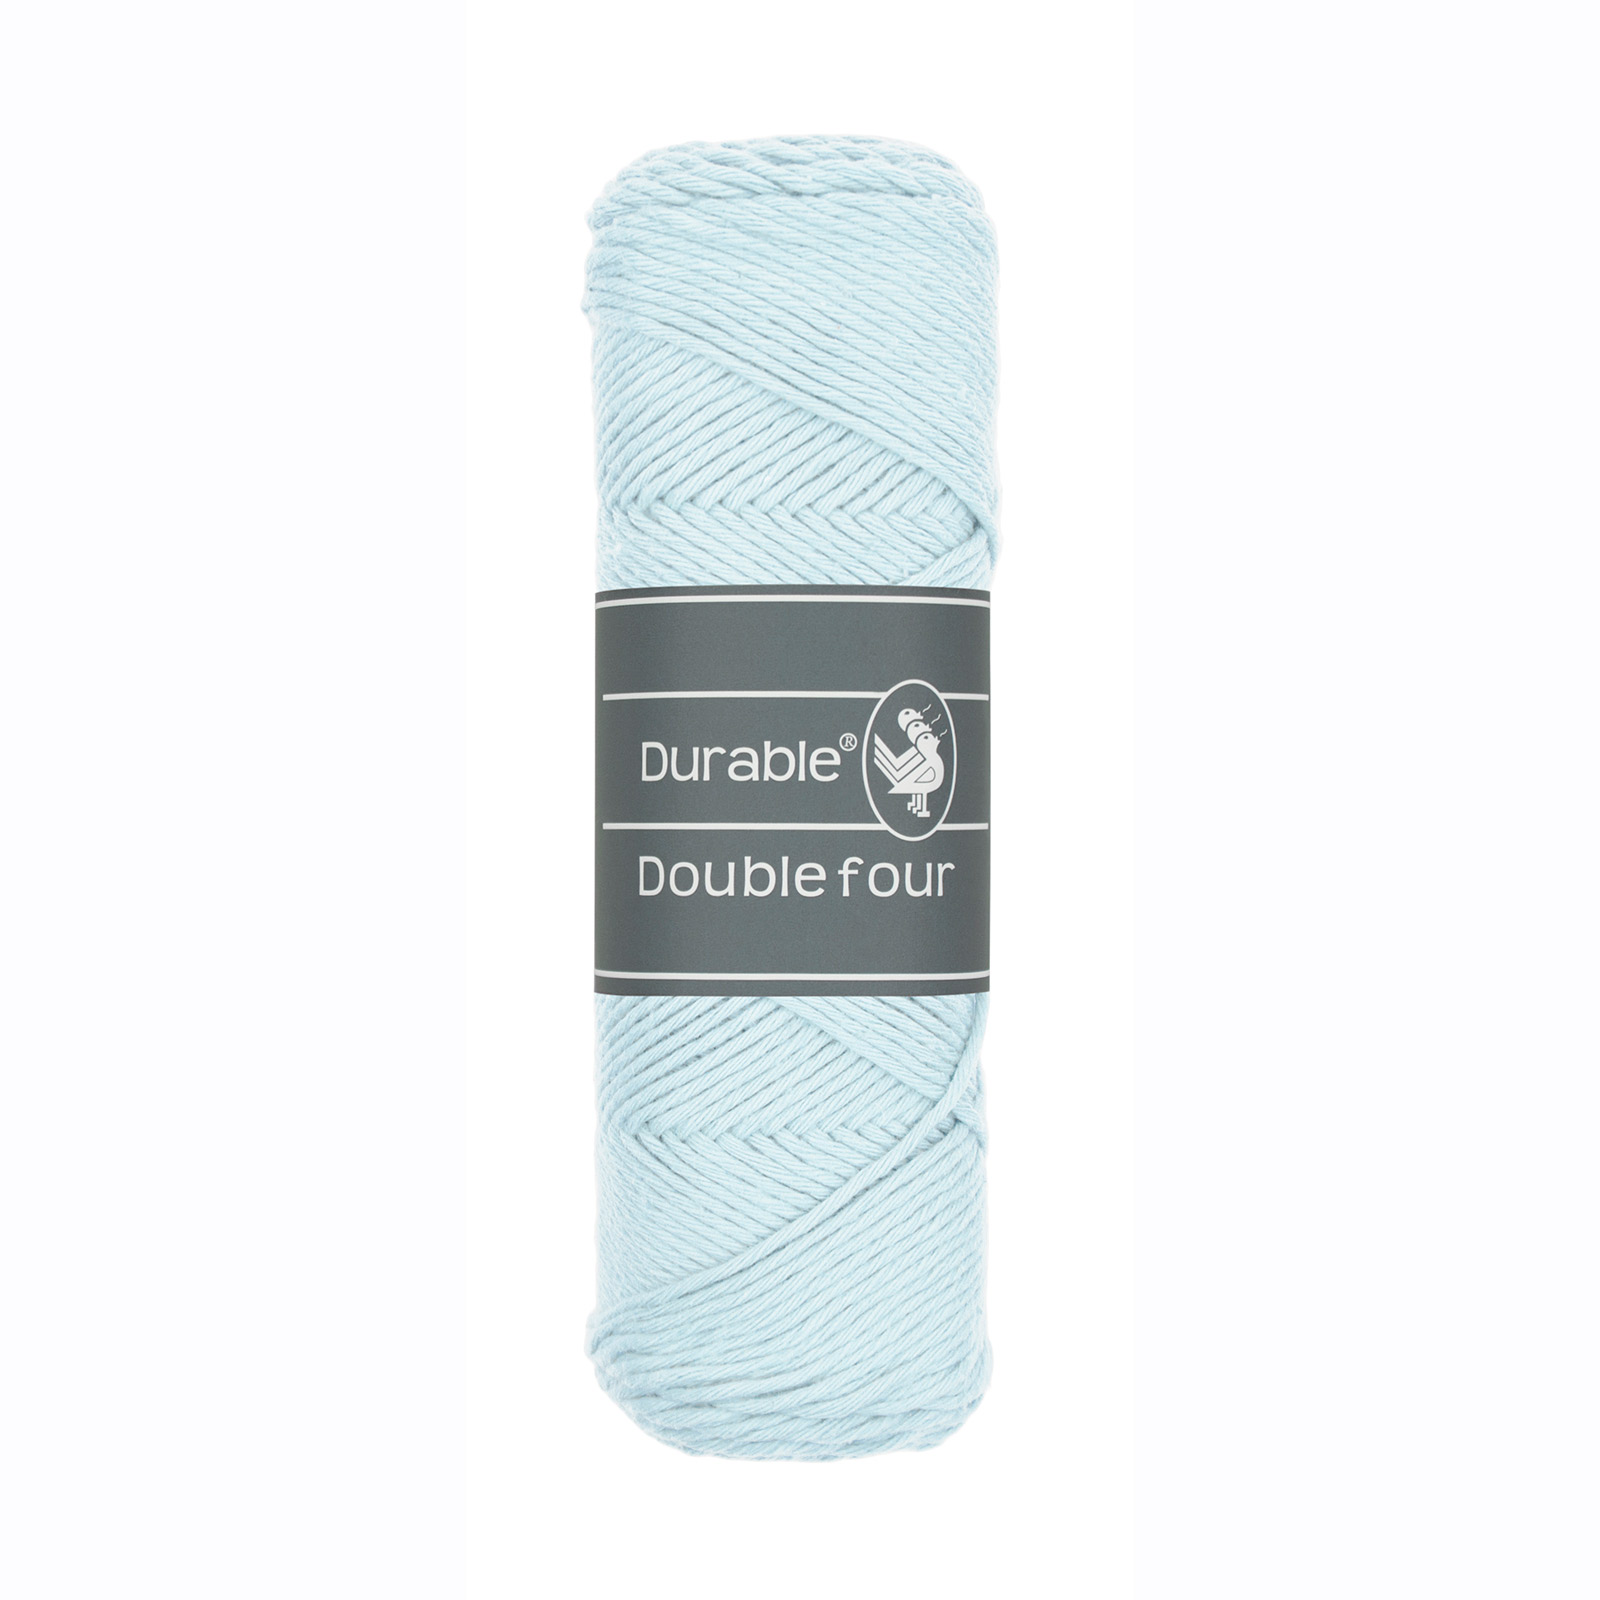 Double Four – 828 Light Blue